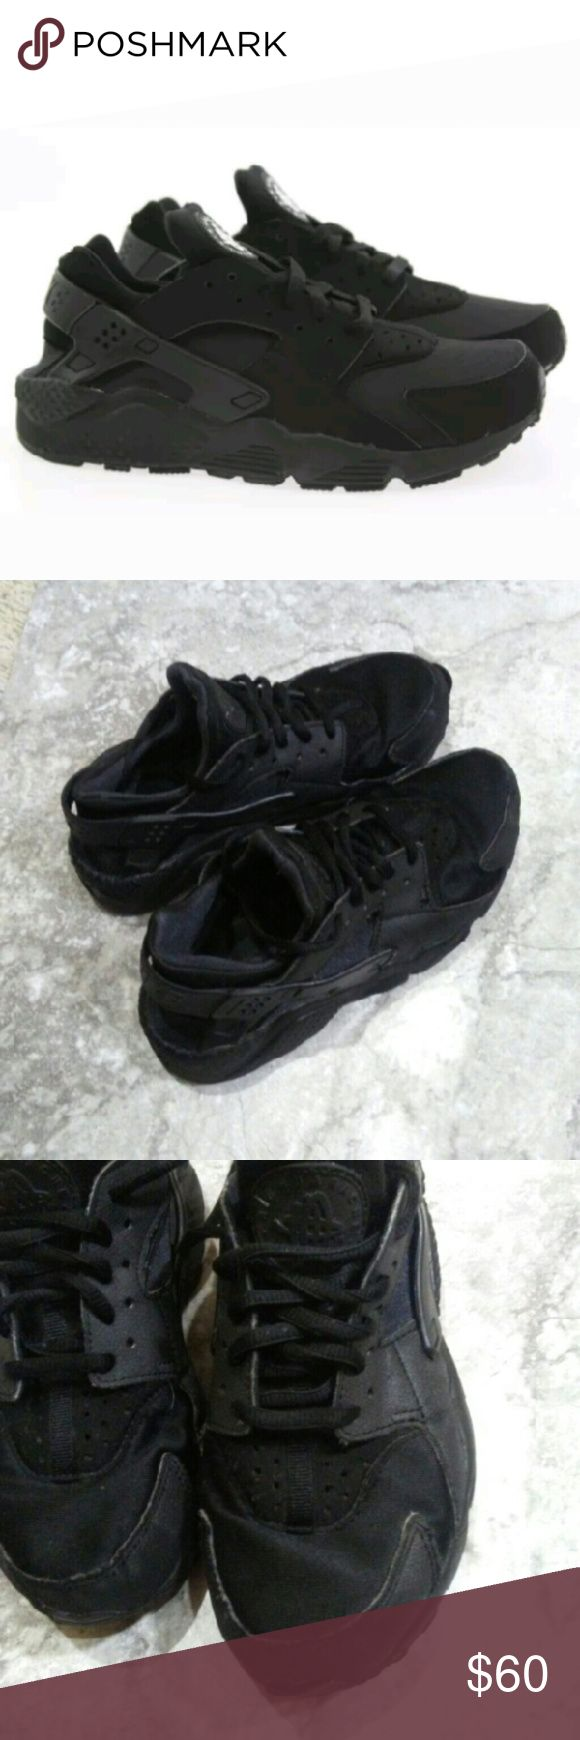 NIKE HUARACHE 634835-009.    SIZE 6 All black women Nike Huarache running shoes. Pre own some damaged around the heel in and front toe as shown in photo  Overall good condition Nike Shoes Athletic Shoes